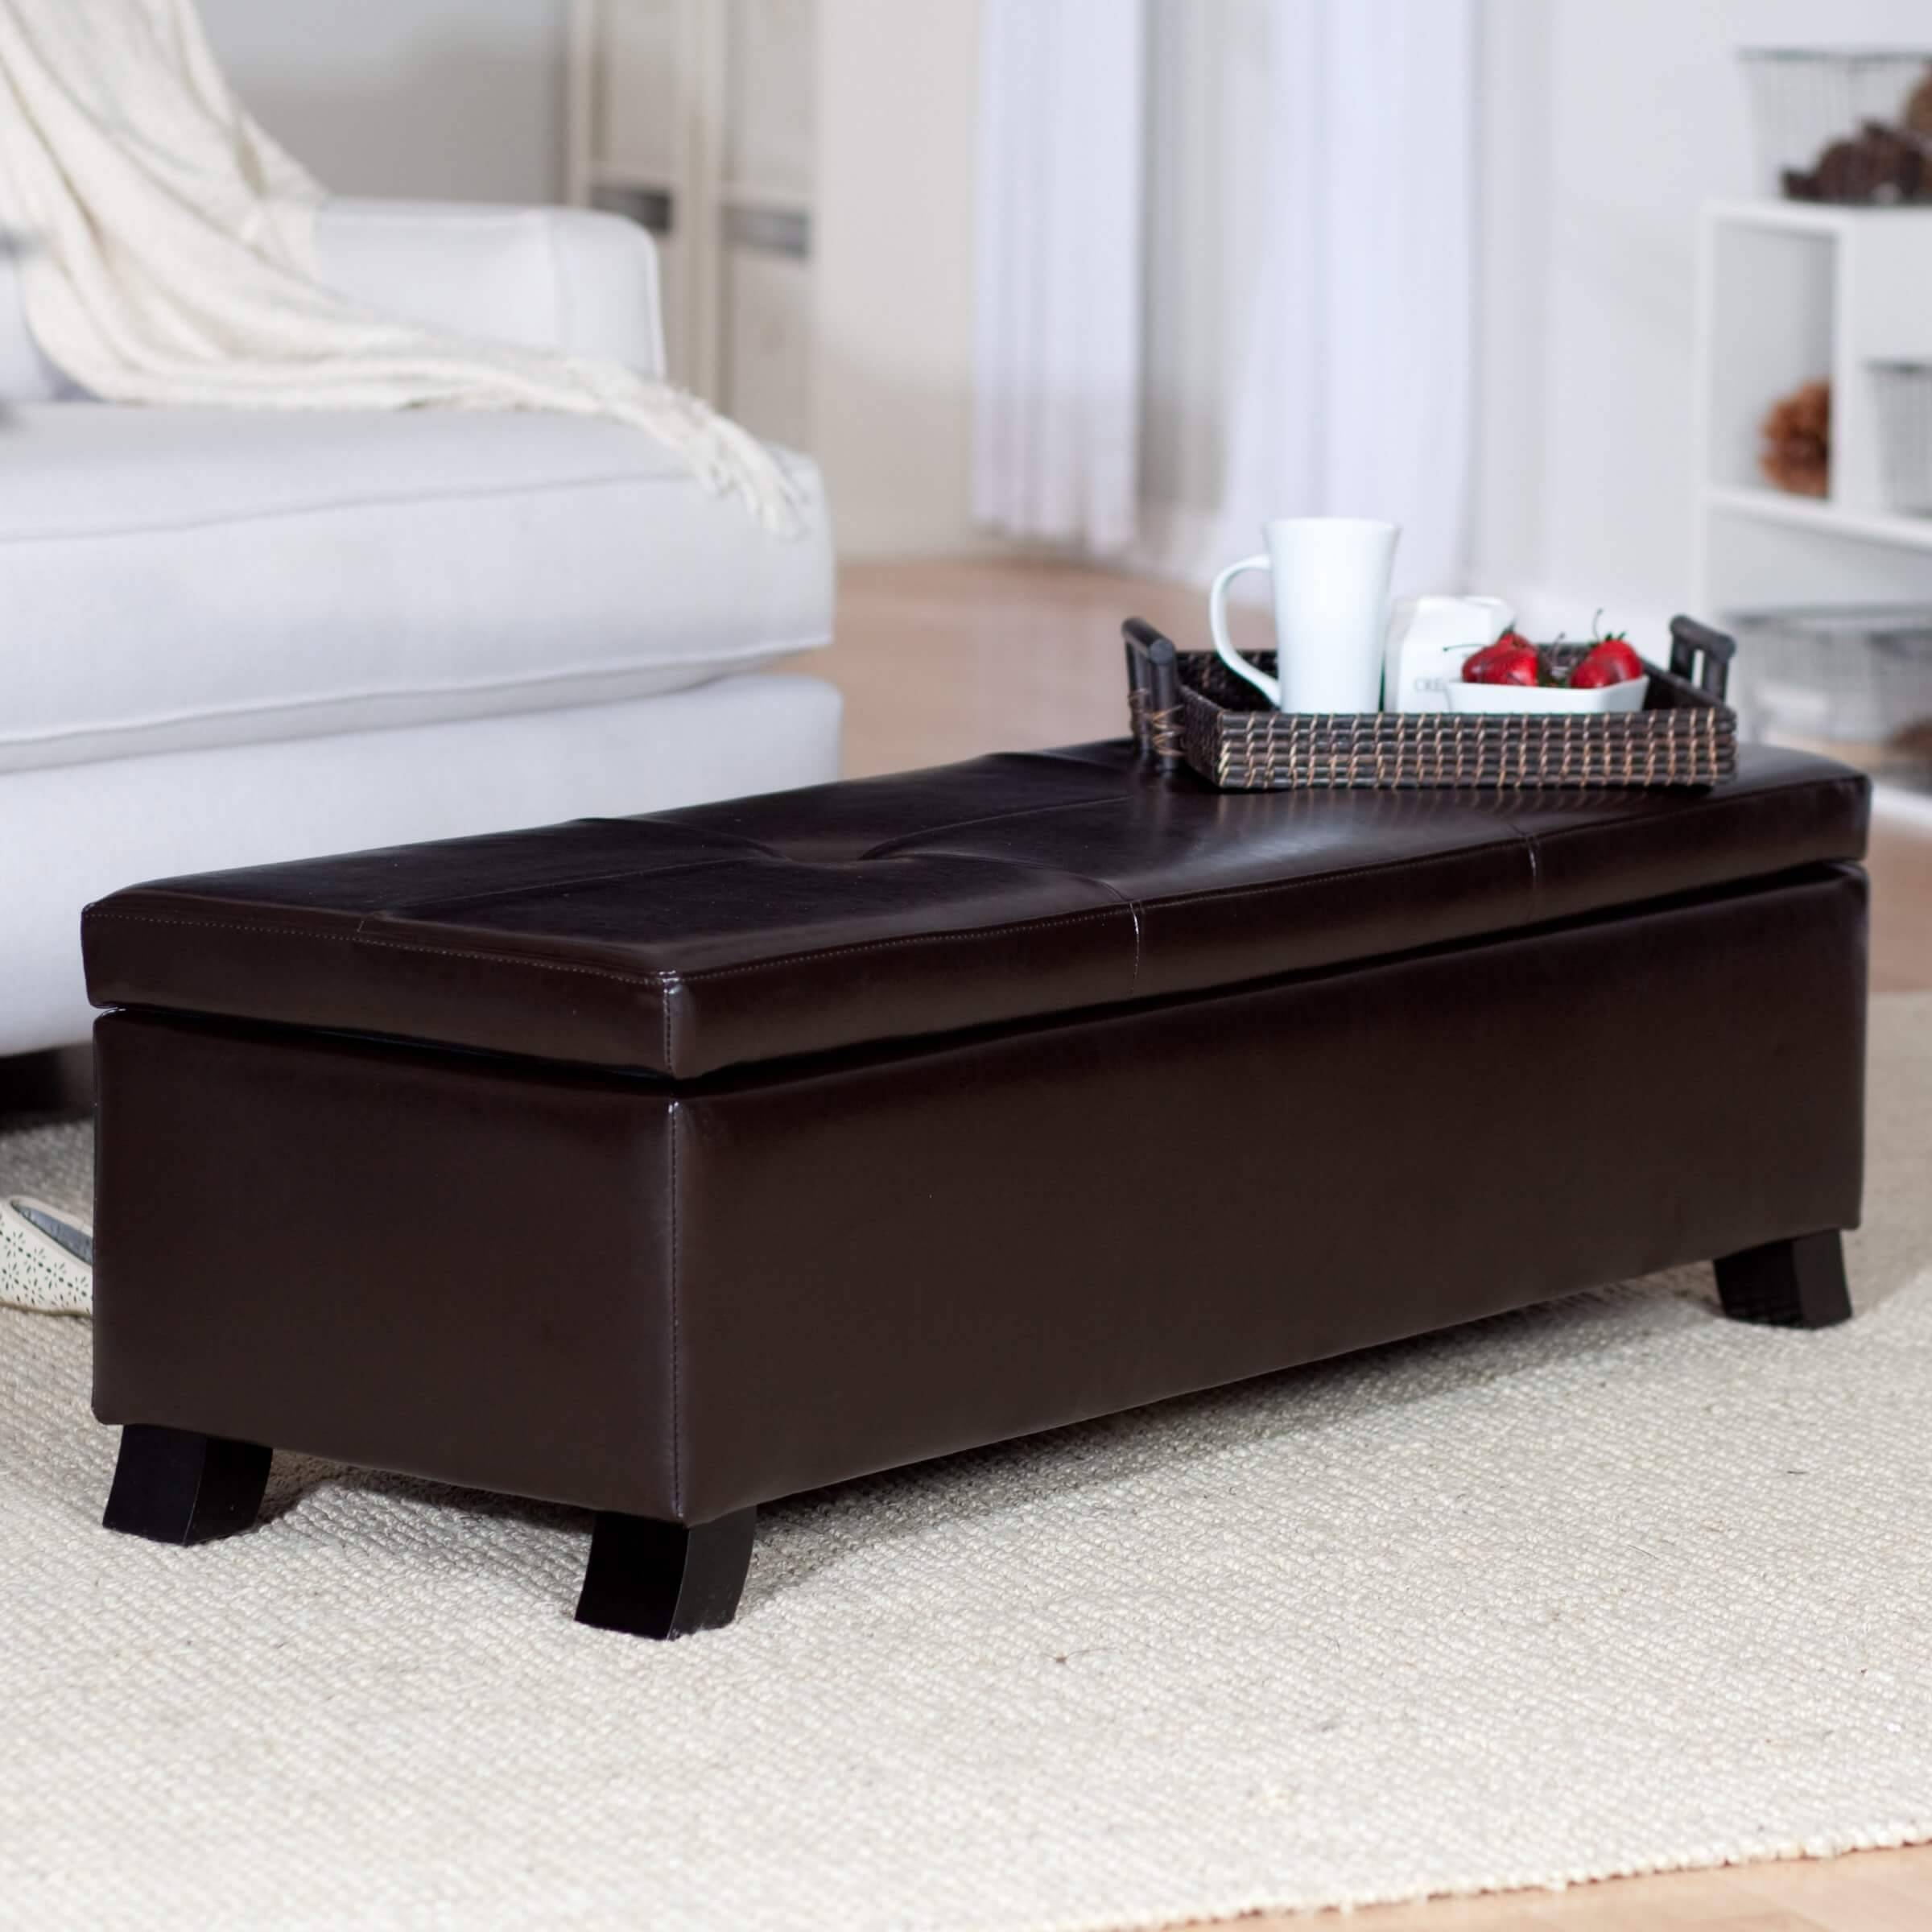 36 Top Brown Leather Ottoman Coffee Tables in Square Storage Coffee Tables (Image 1 of 30)